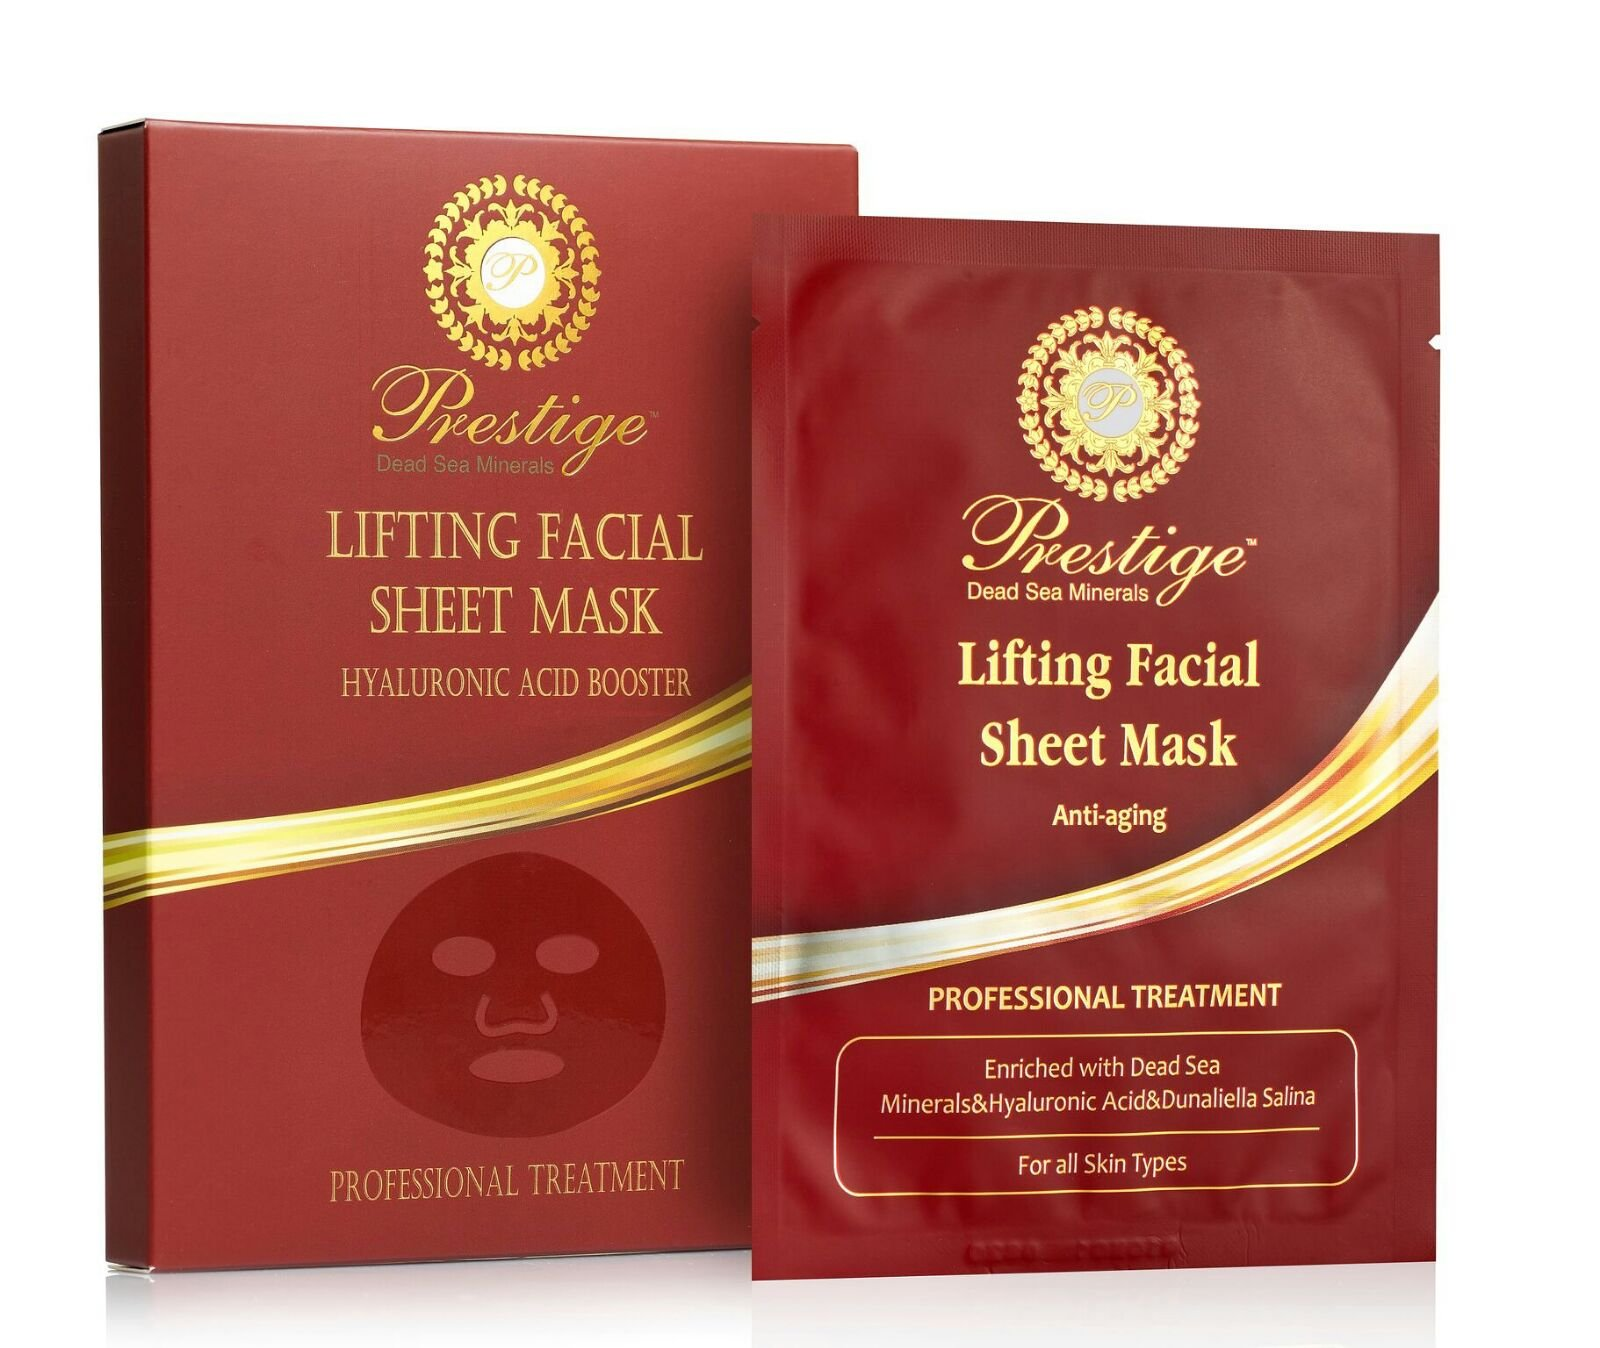 Face Mask Sheet Facial Slimming Hyaluronic Acid Booster Dead Sea Minerals Lifting Anti-Aging Professional Treatment Made in Israel New Formula Prestige